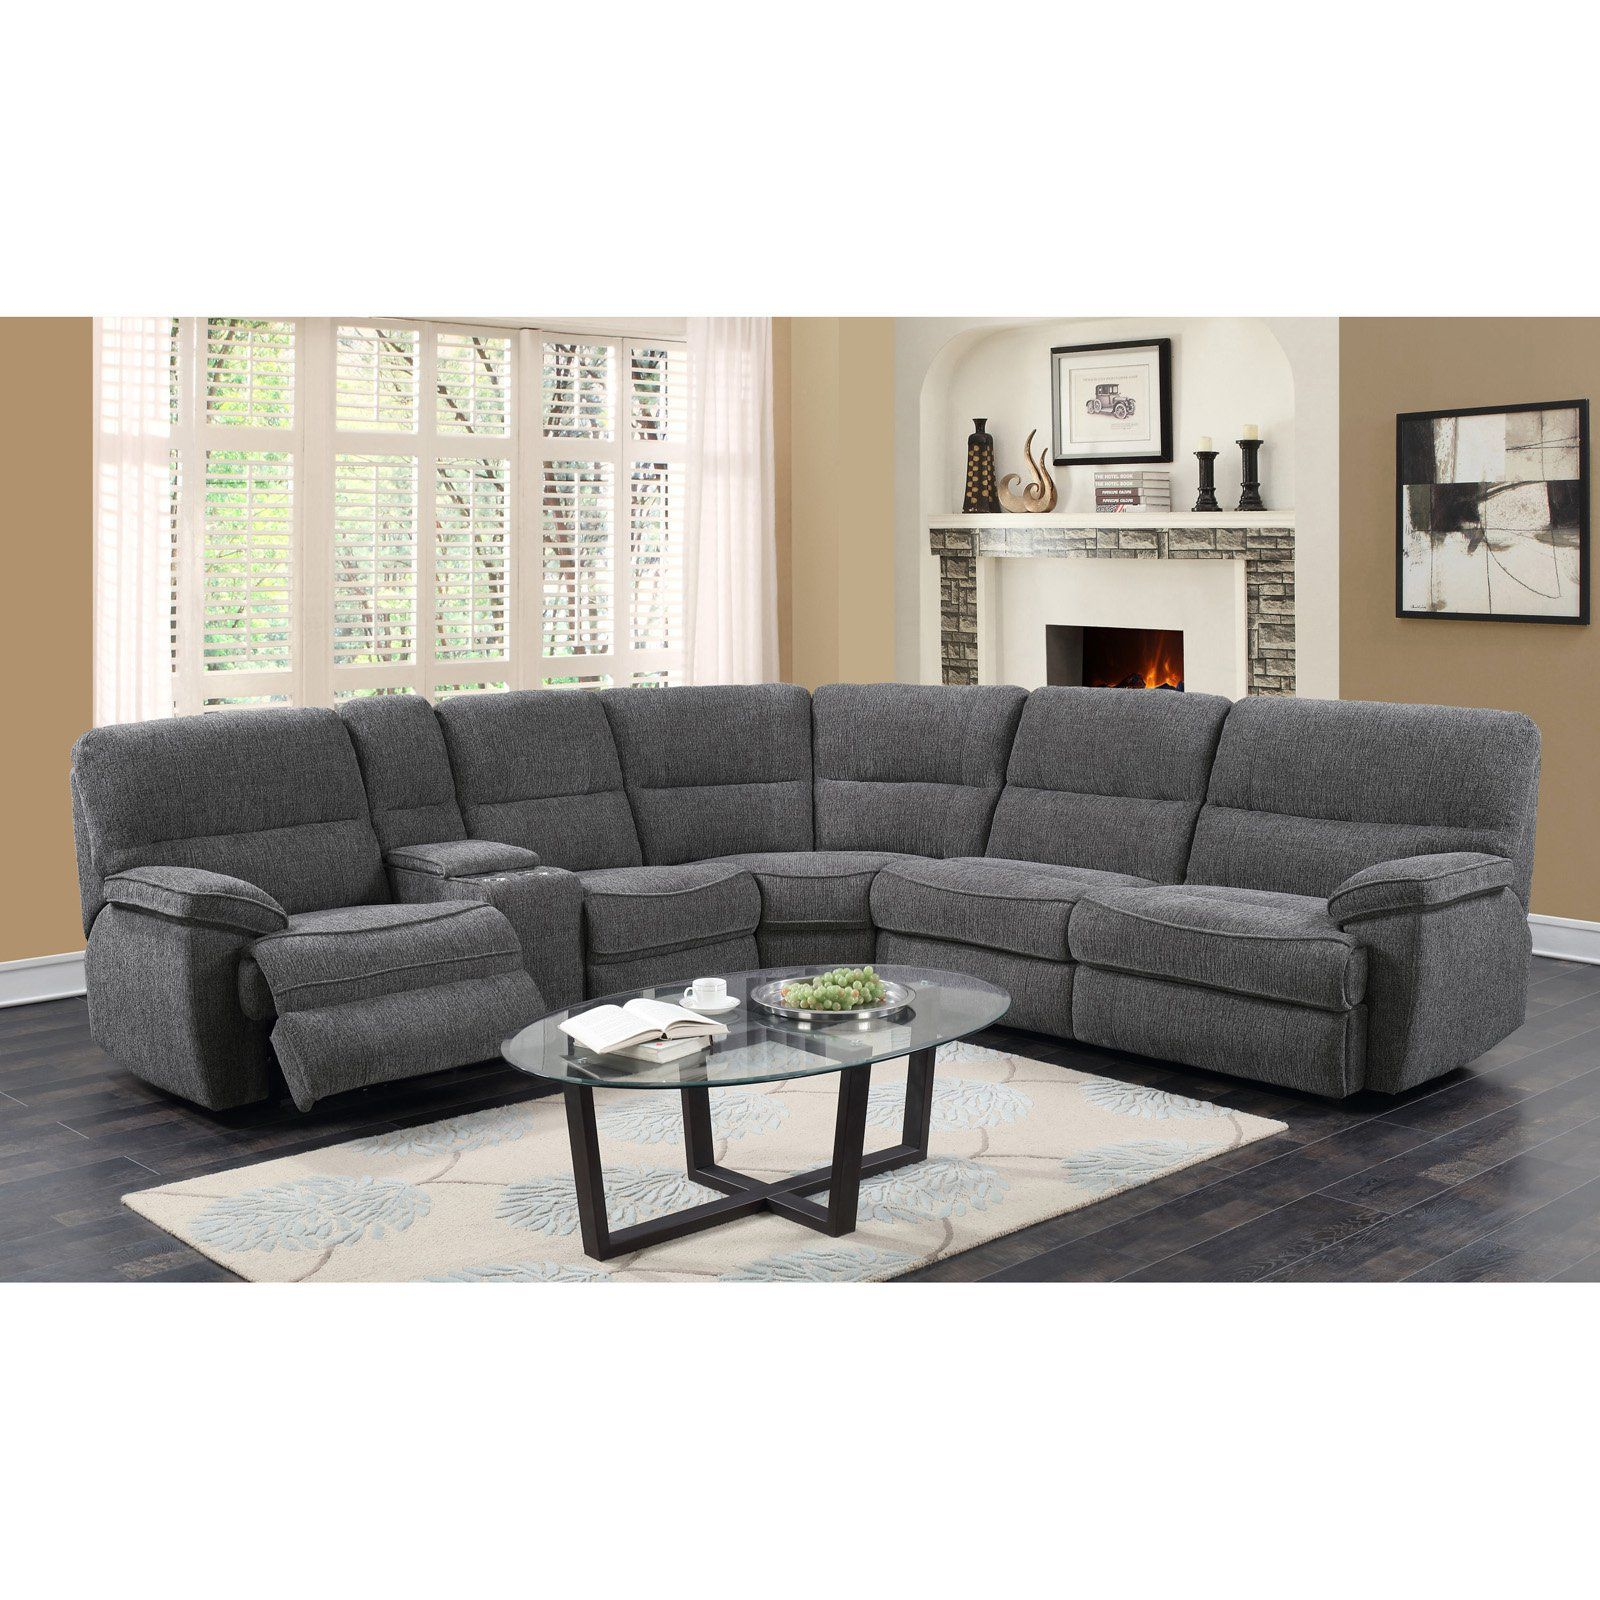 Best Emerald Home Aurora 3 Piece Sectional Sofa With Sleeper 400 x 300